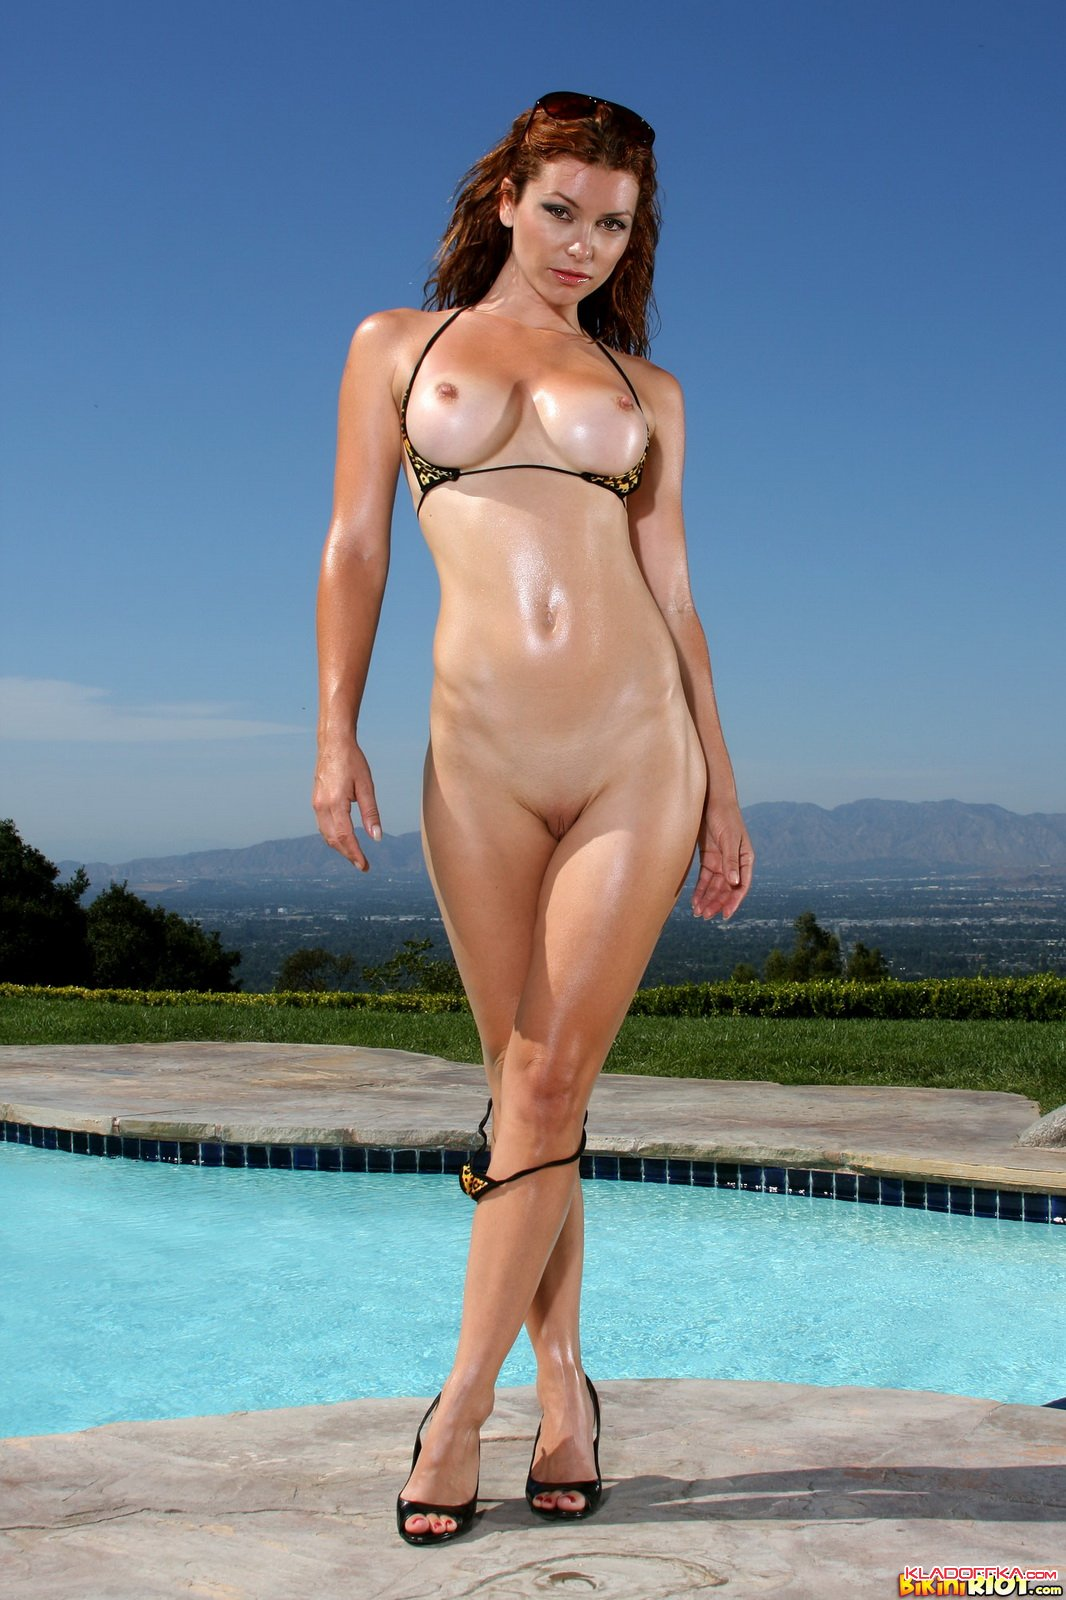 Something is. heather vandeven bikini riot right! seems